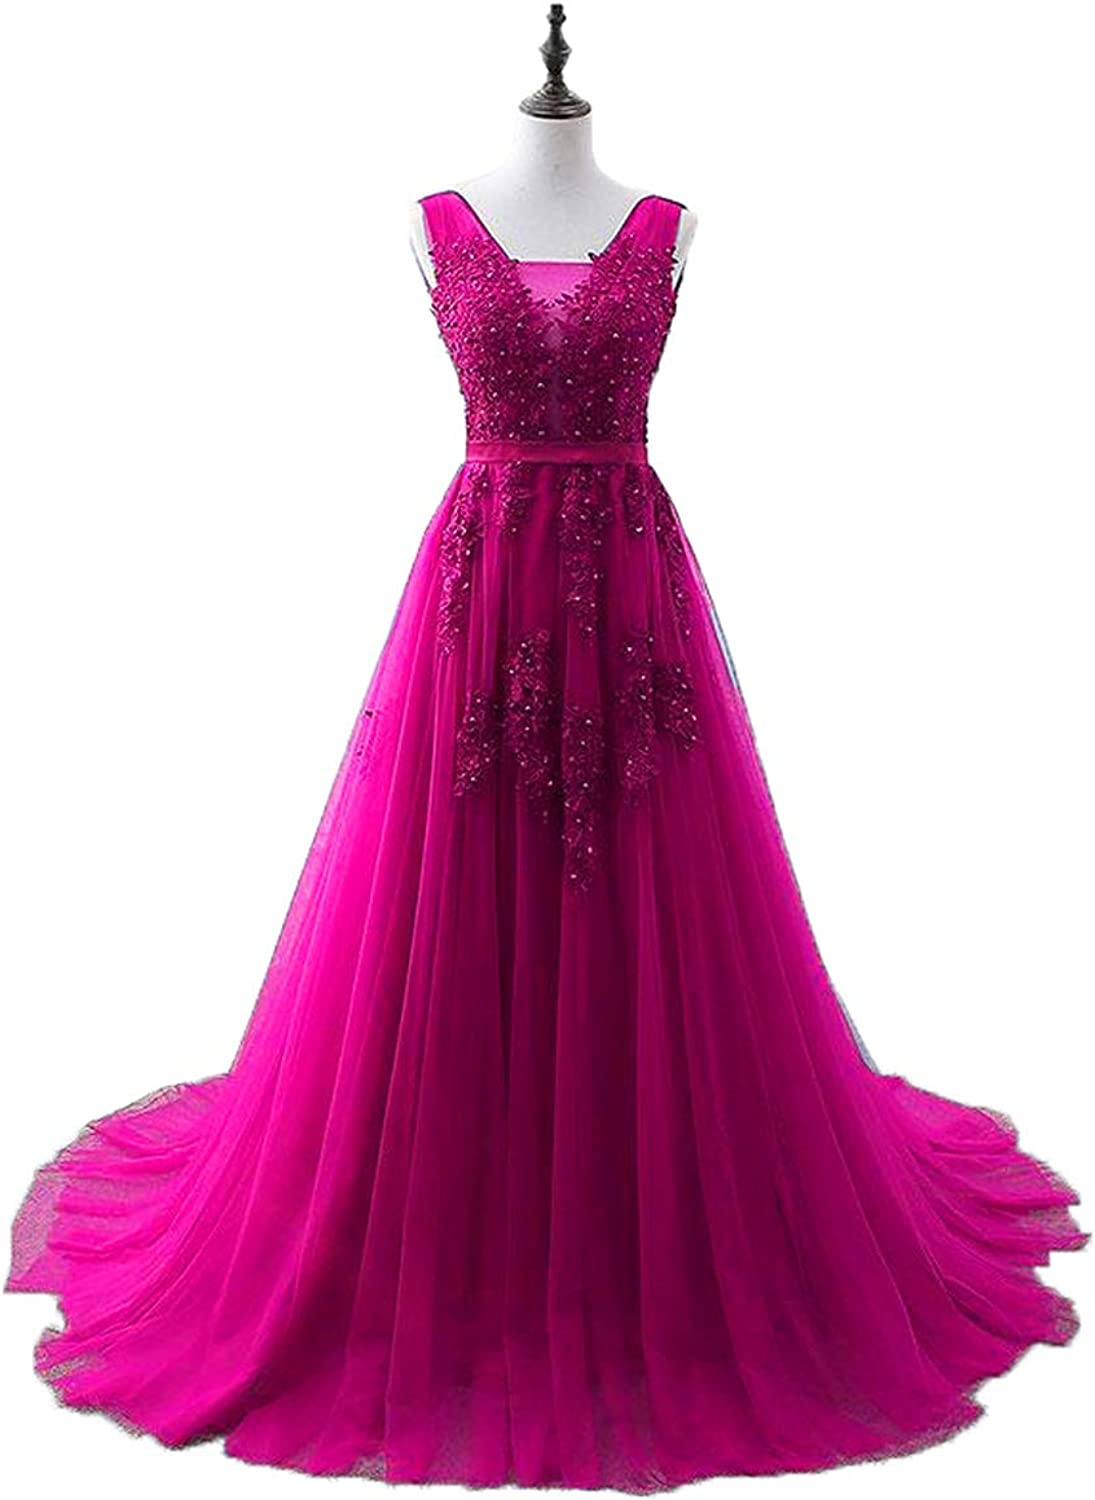 EileenDor Women's Lace Appliques Tulle Long Evening Dresses V Neck Sleeveless Beaded Laceup Formal Dress